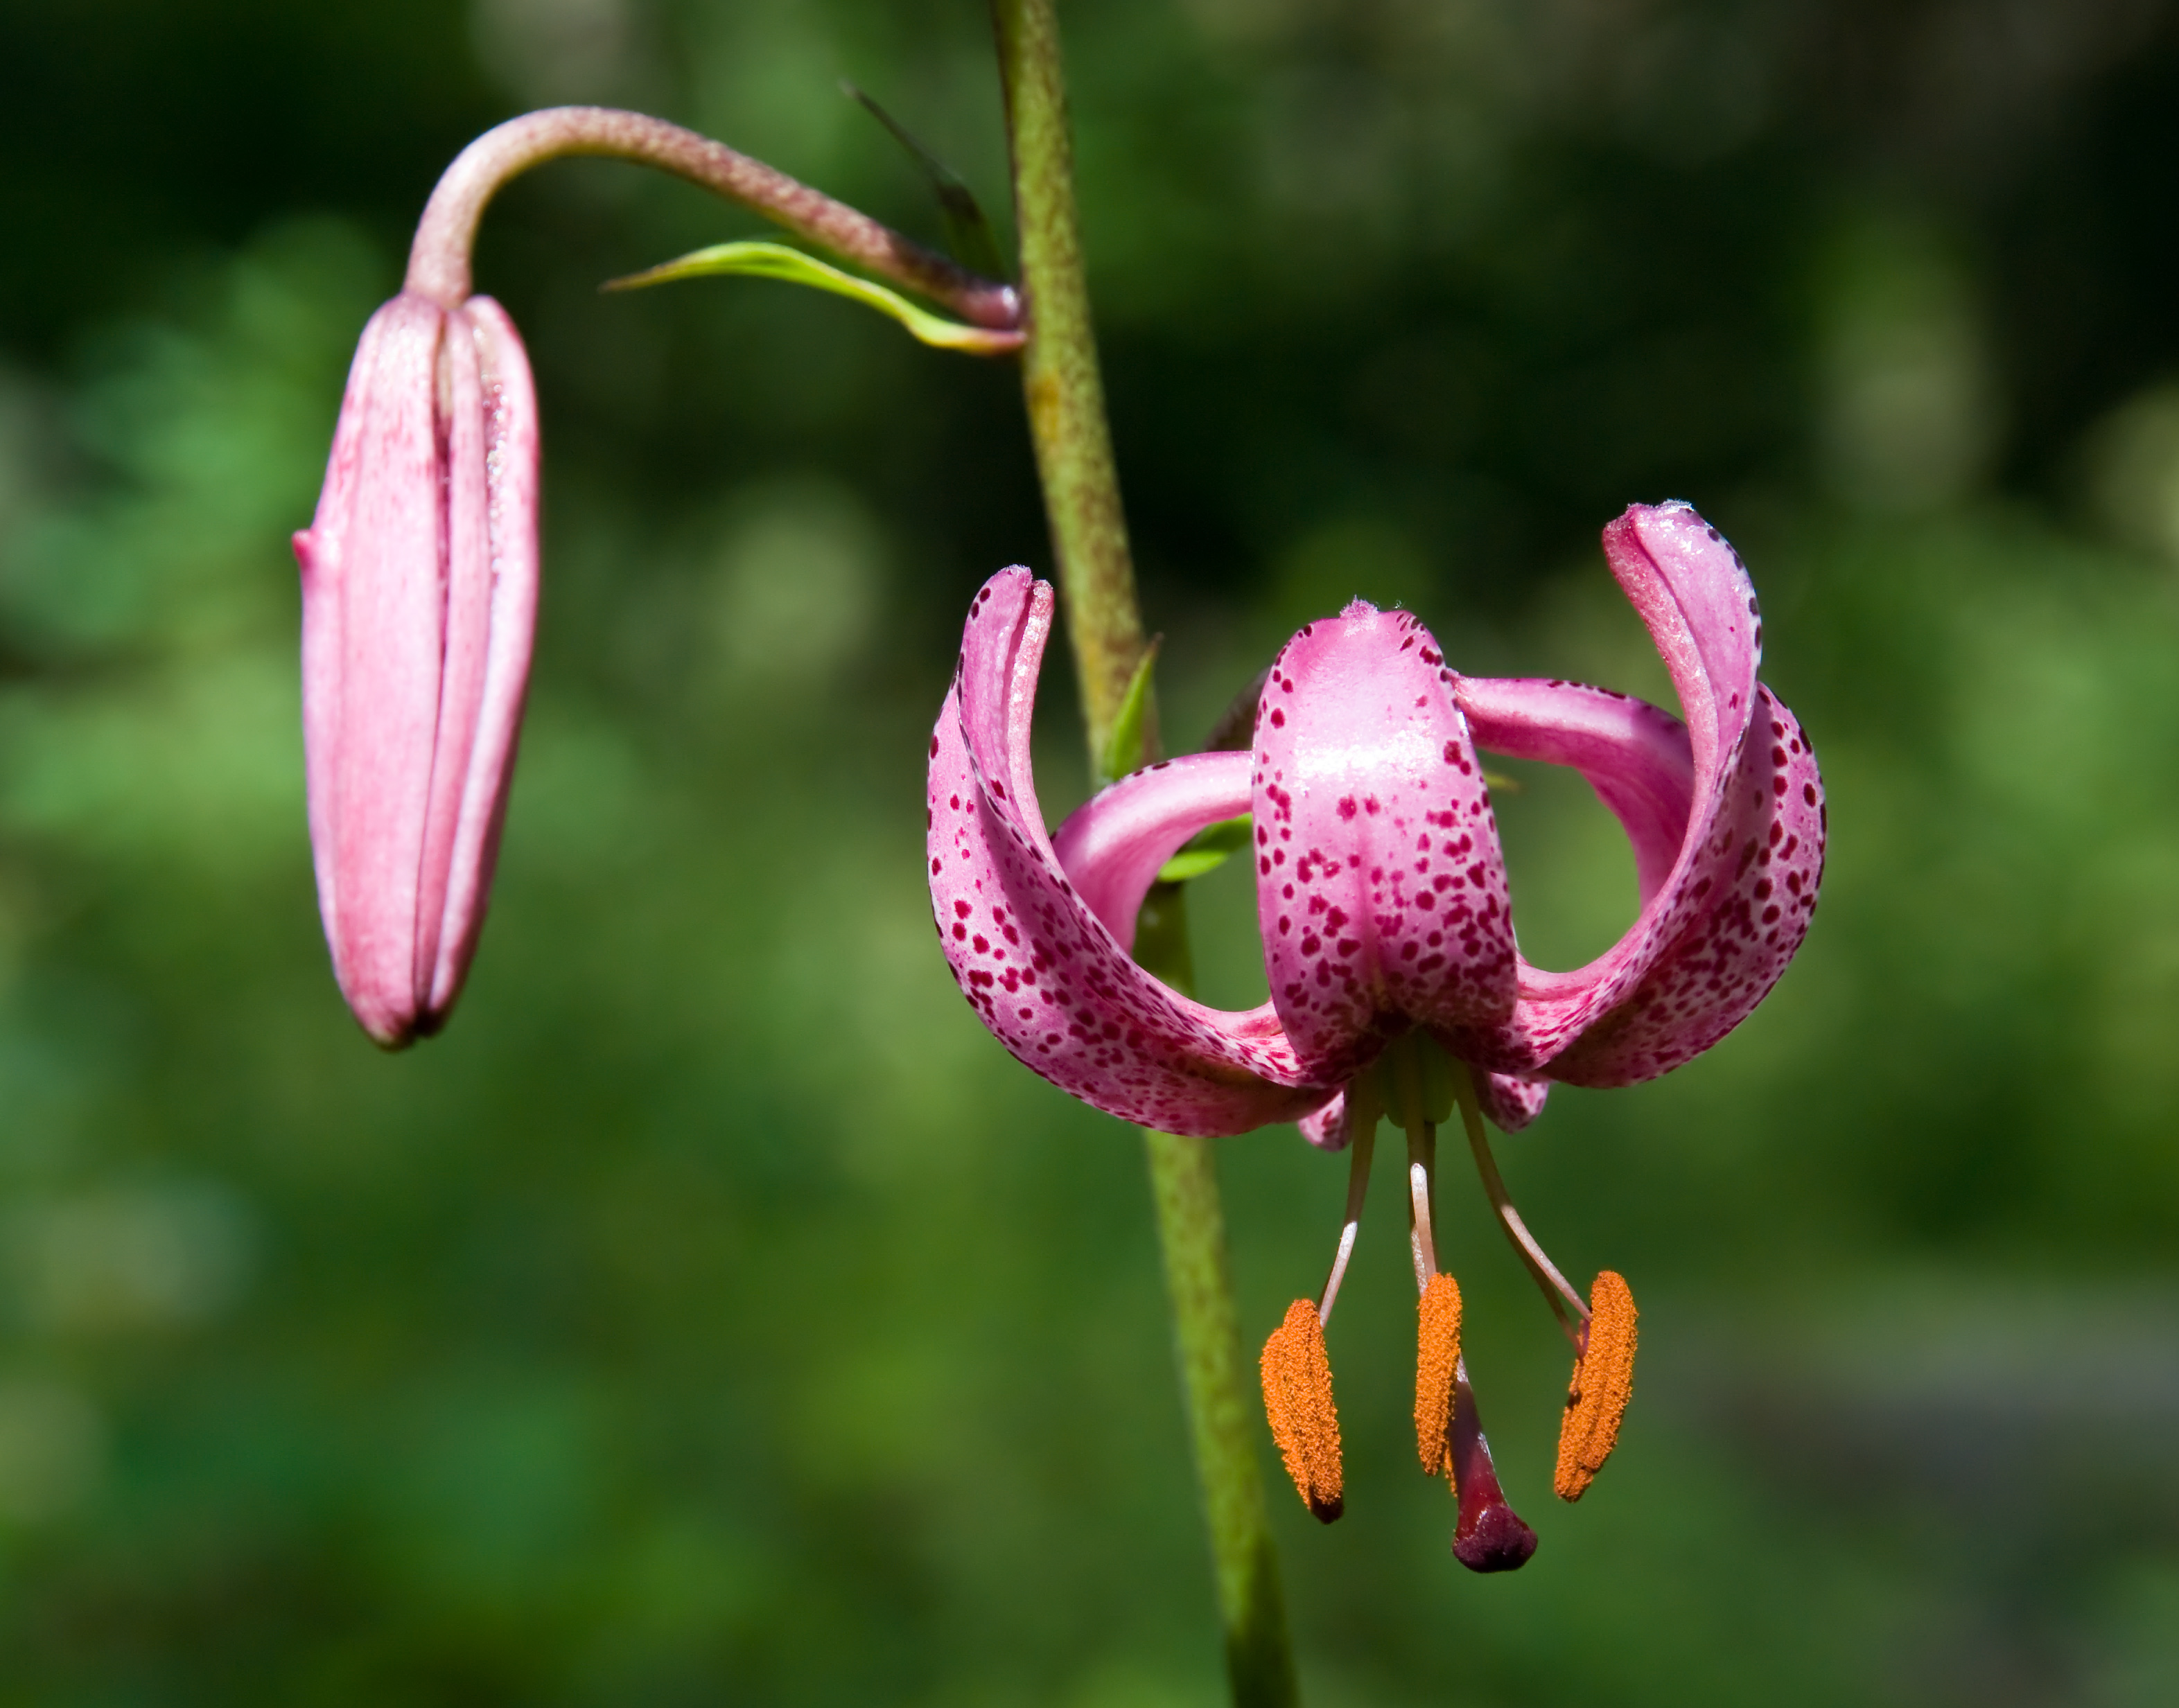 Filelilium martagon kakskertag wikimedia commons filelilium martagon kakskertag izmirmasajfo